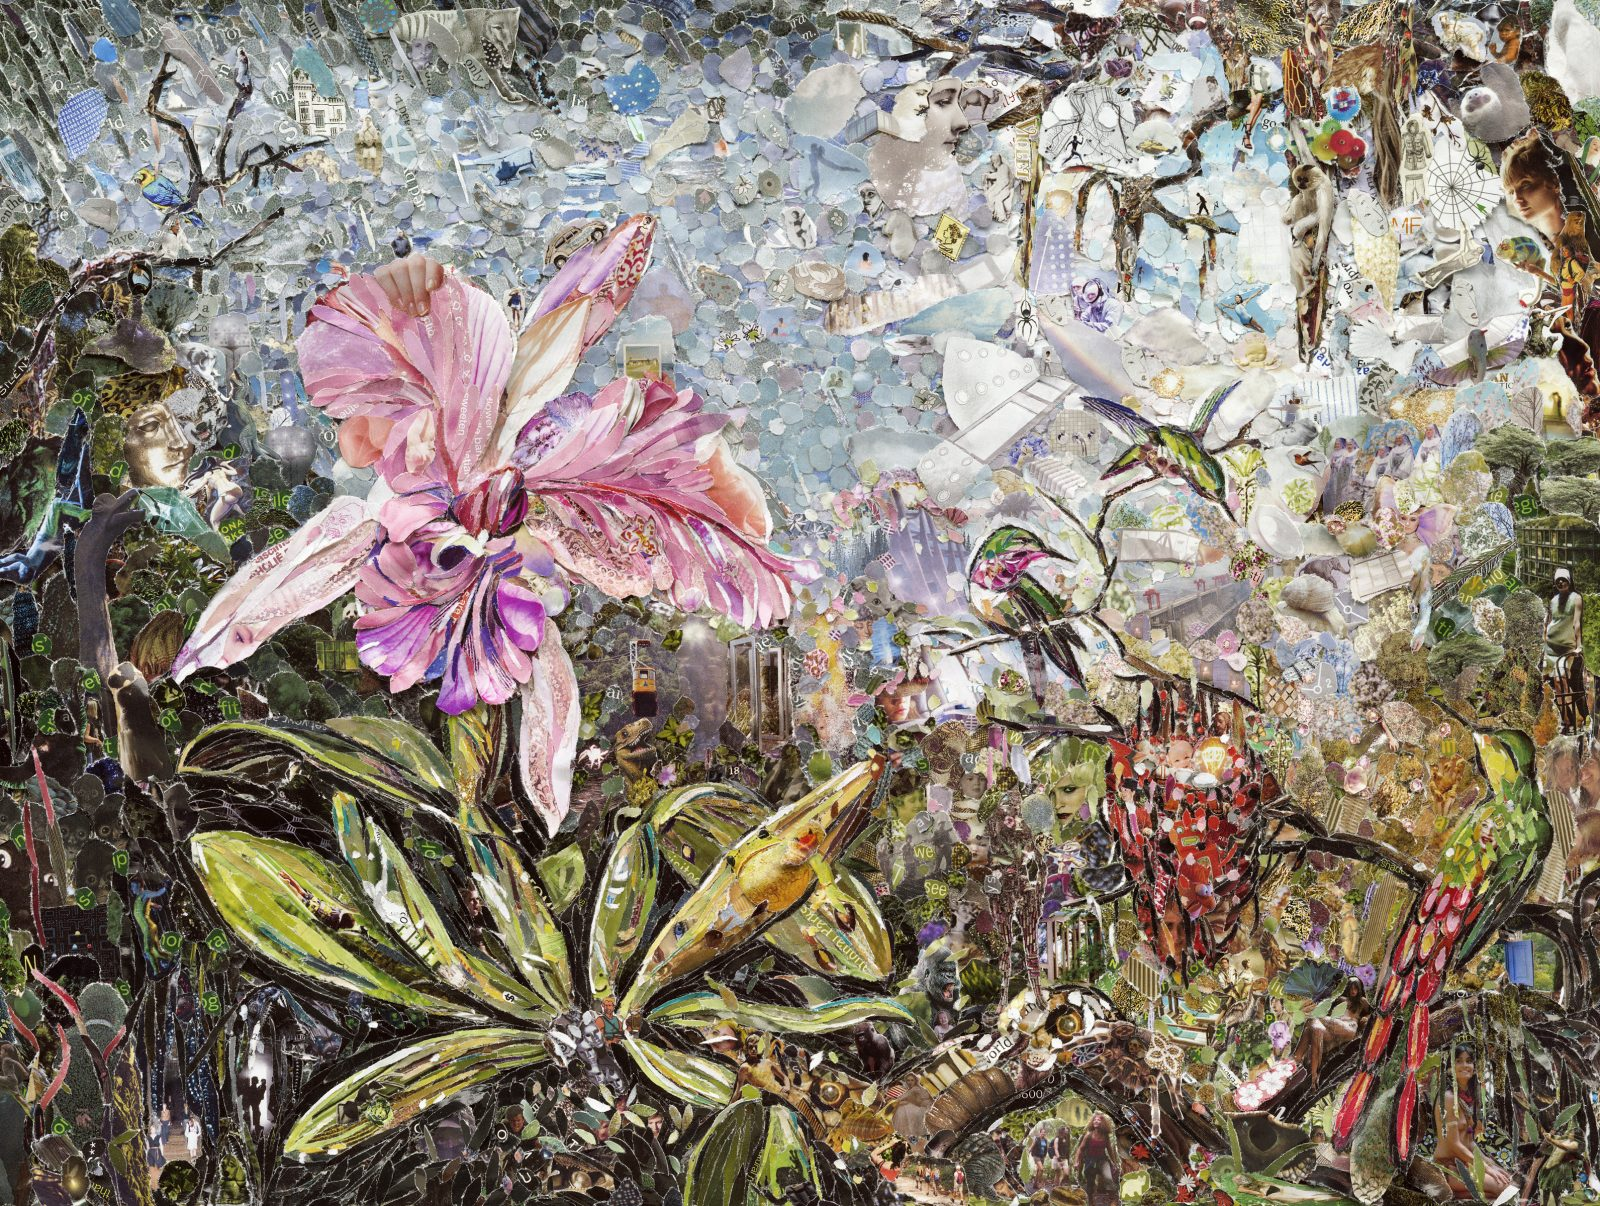 Vik Muniz (American, b. 1961) Orchid and Three Brazilian Hummingbirds , 2013 Digital C print, 40 x 53 in., Exhibition print courtesy of the artist and Sikkema, Jenkins & Co. Gallery, NY. ©Vik Muniz / VAGA at Artists Rights Society (ARS), NY.